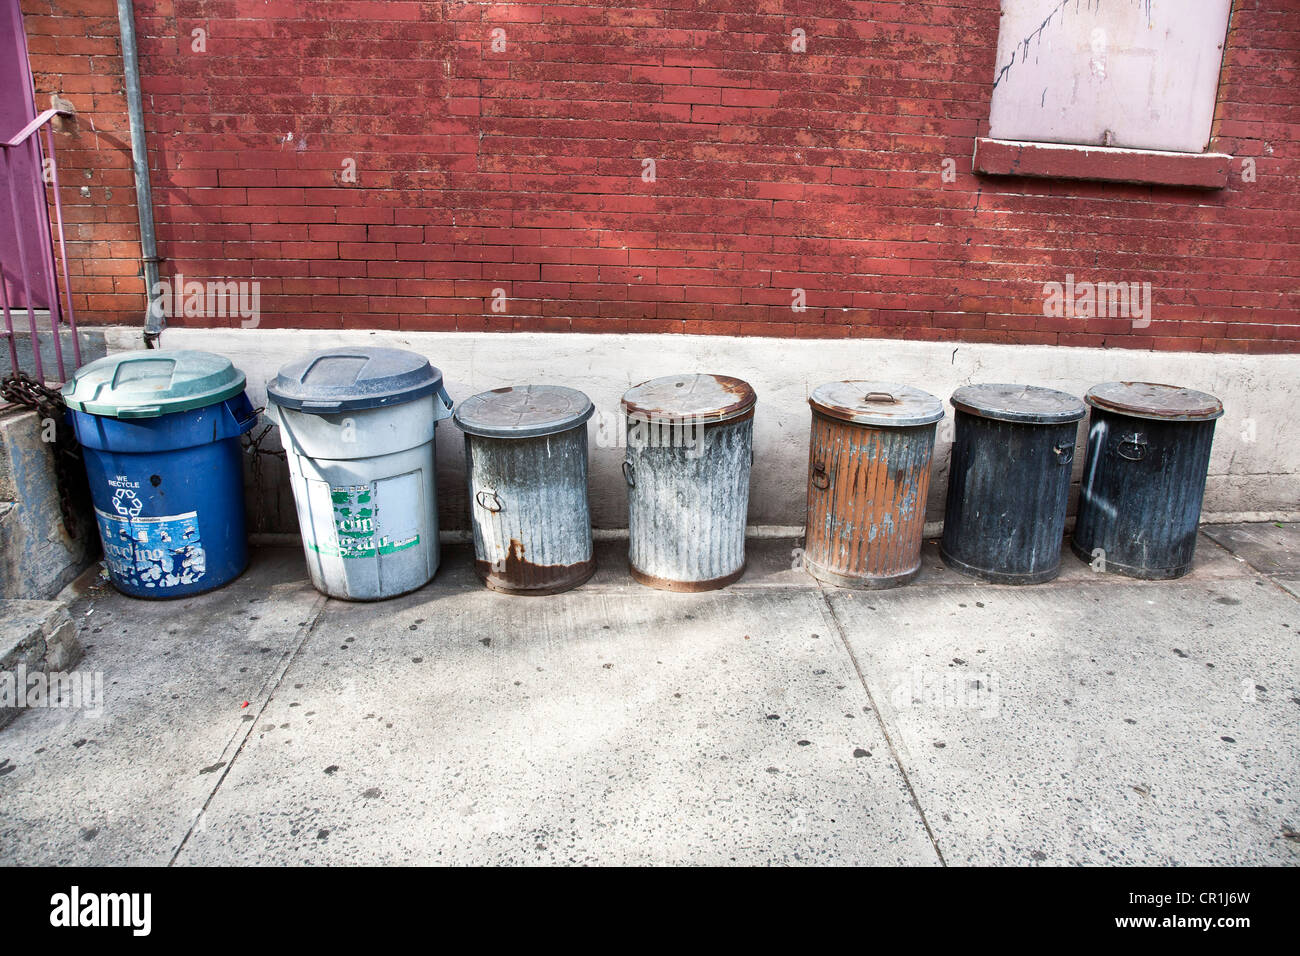 row of old fashioned galvanized garbage cans with traces of paint lined up against a brick wall Hells Kitchen neighborhood - Stock Image